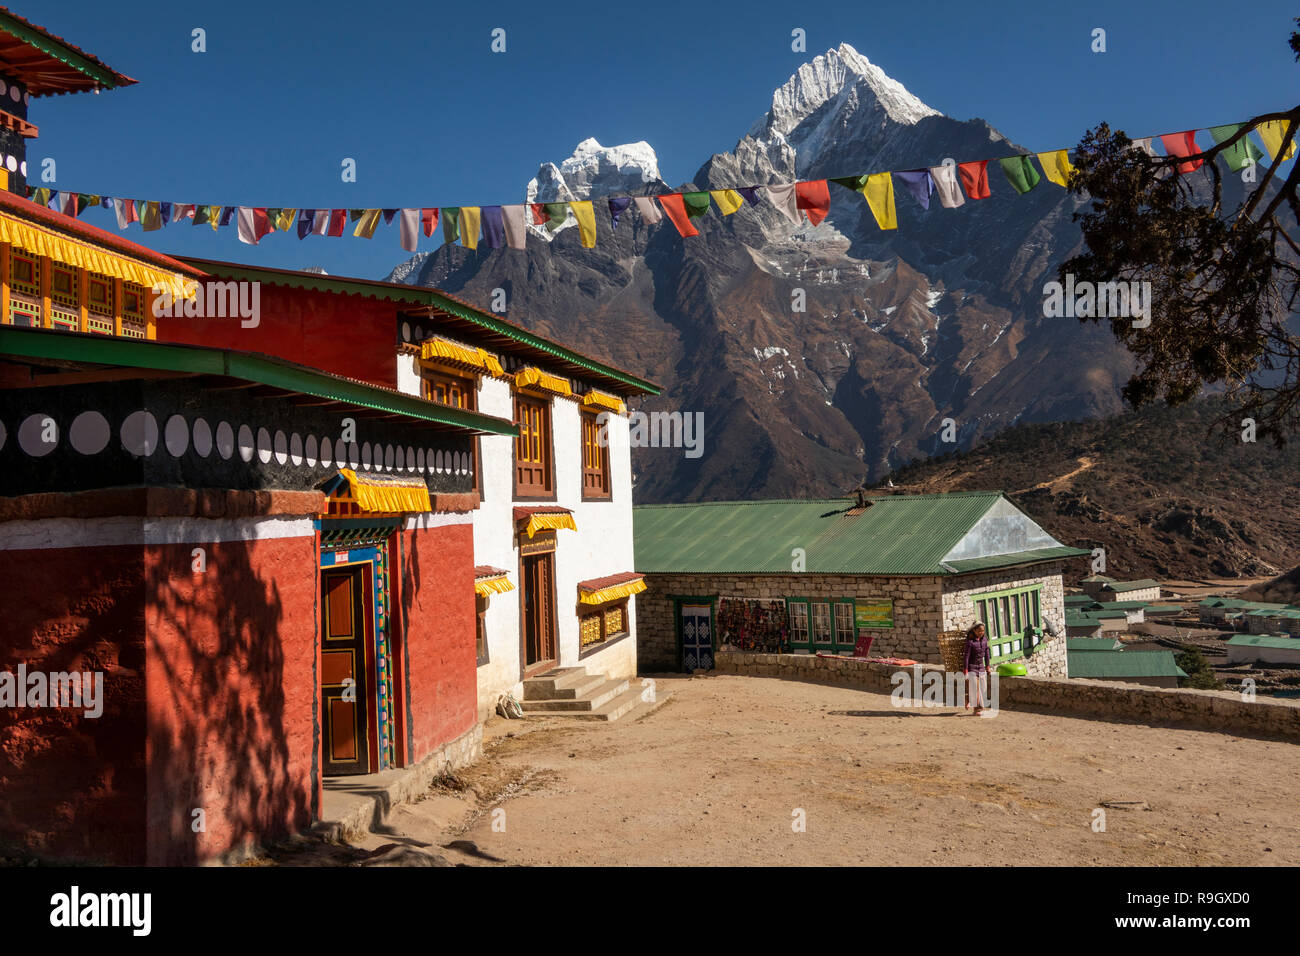 Nepal, Everest Base Camp Trek, Khumjung, traditional village gompa with view of Hongku snow capped peak - Stock Image